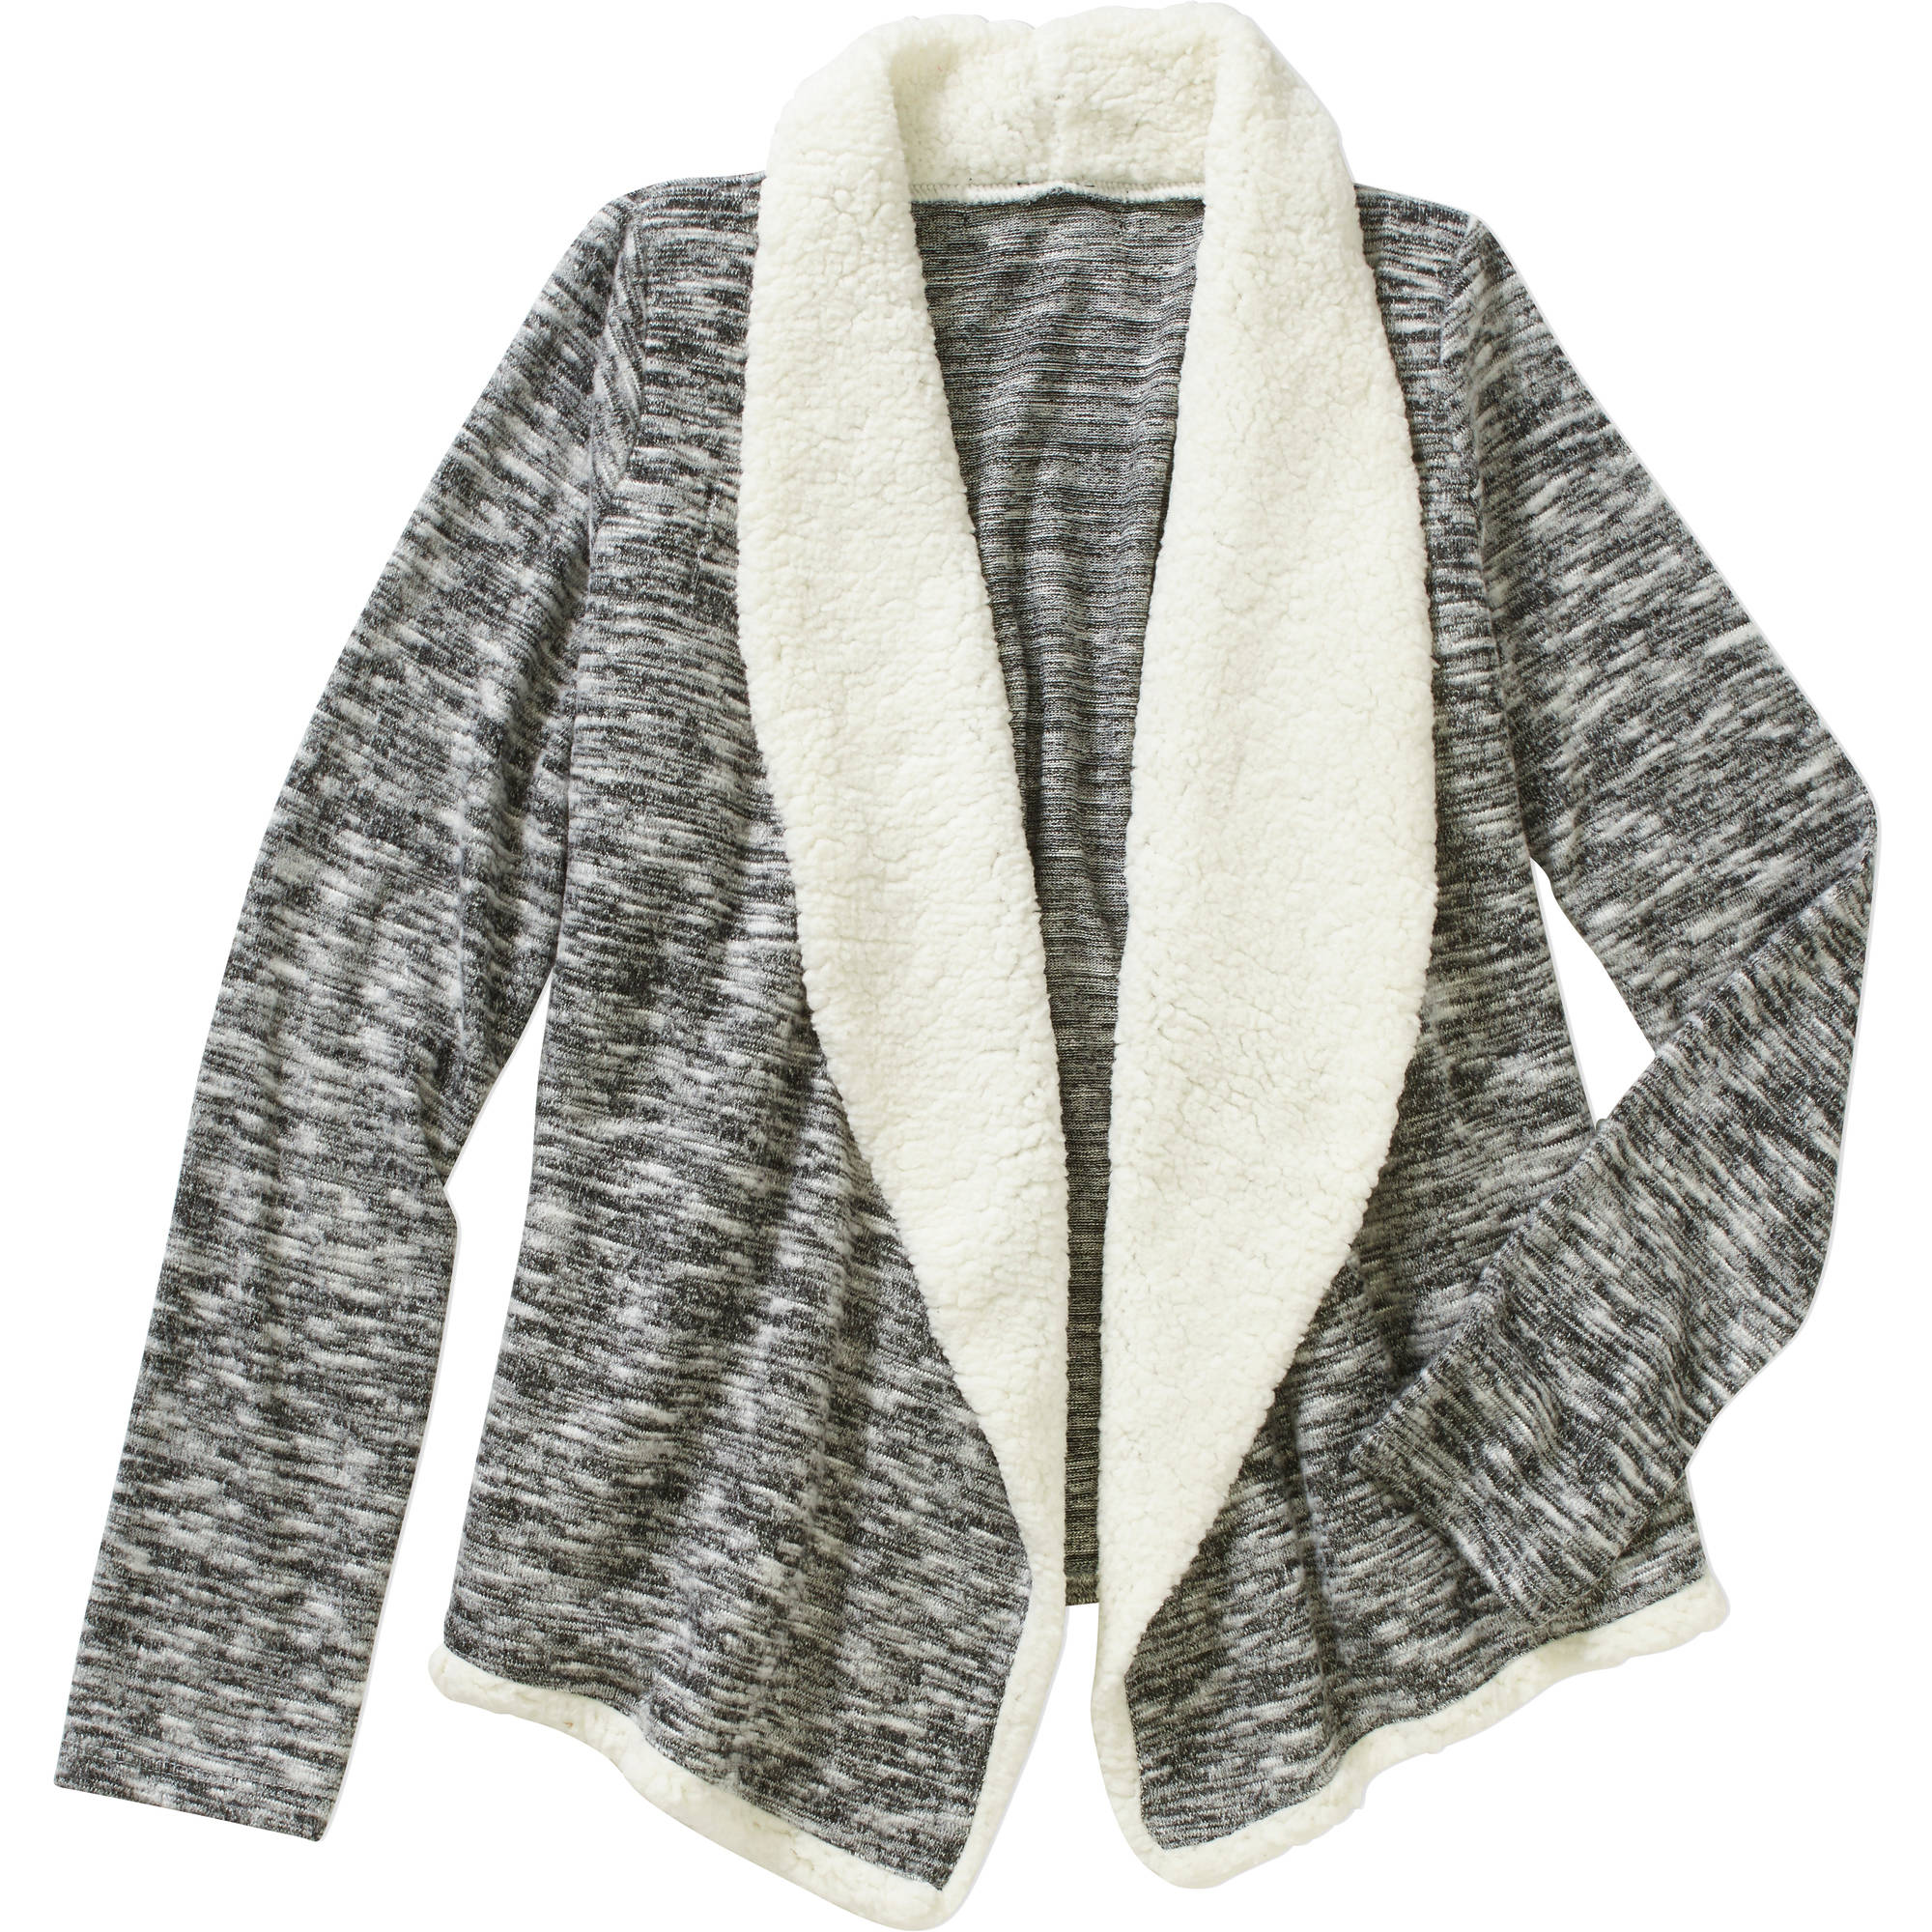 Girls' Open Front Cardigan Sweater with Sherpa Lining